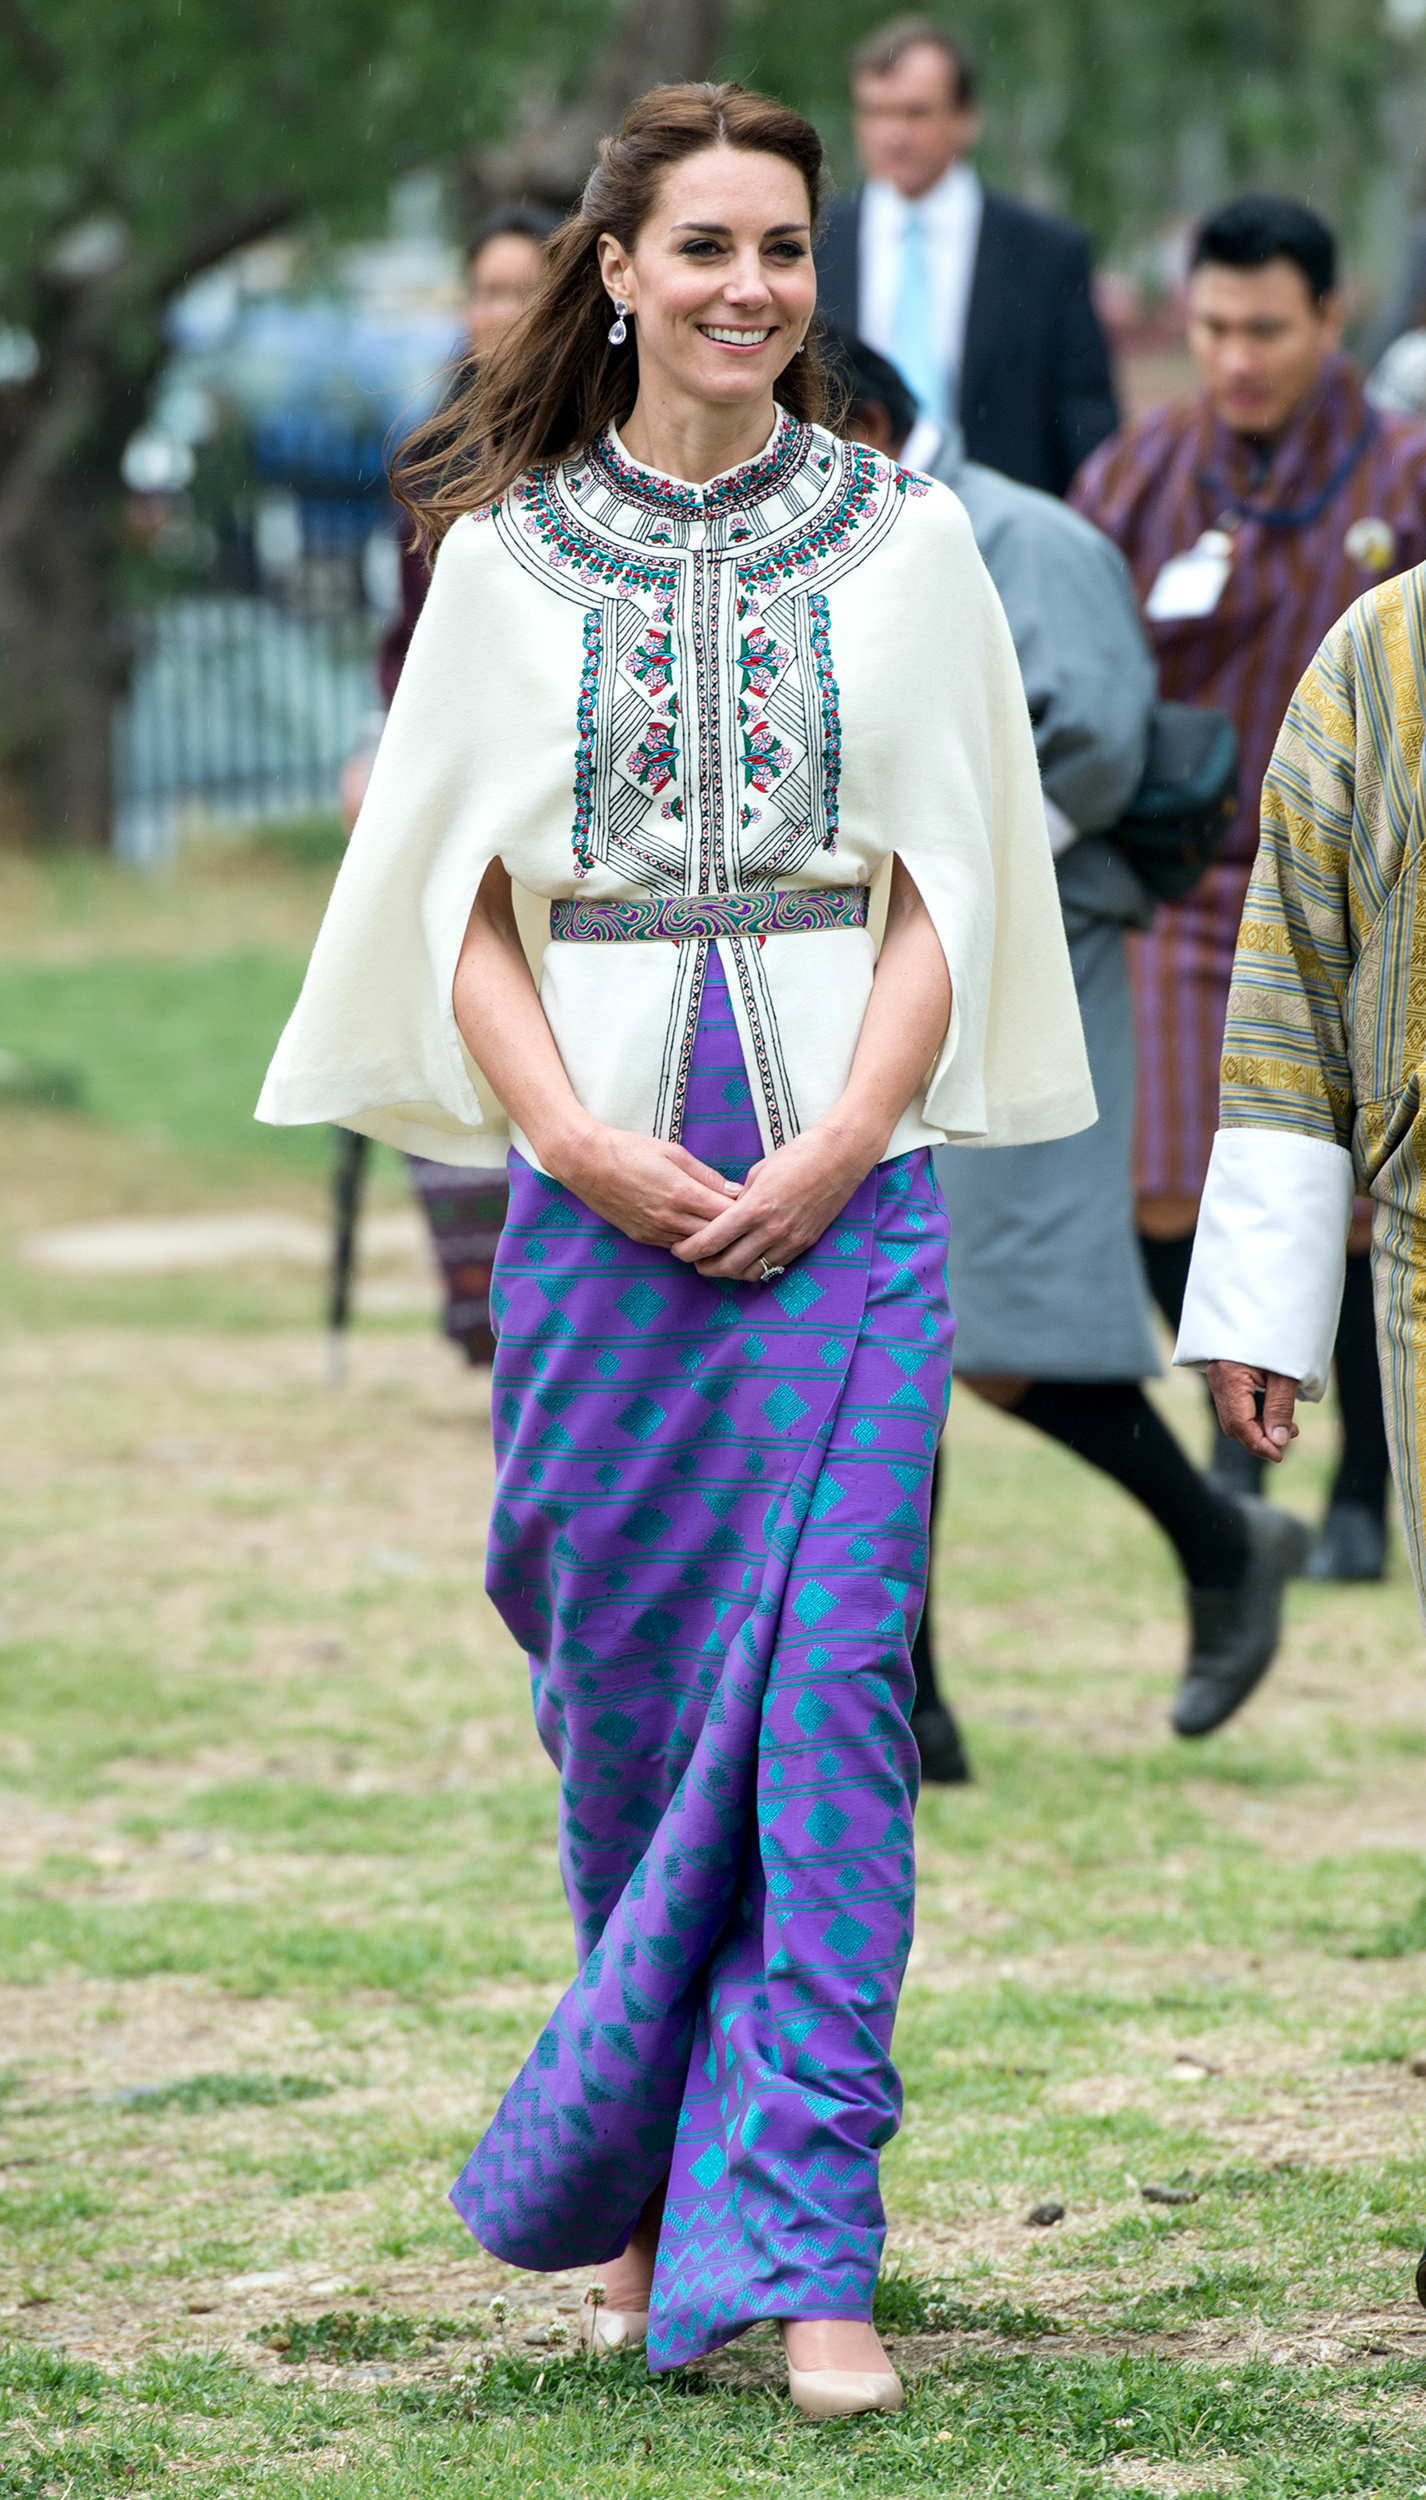 Catherine, Duchess of Cambridge visits Thimphu's open-air archery venue in Thimphu, Bhutan on April 14, 2016.